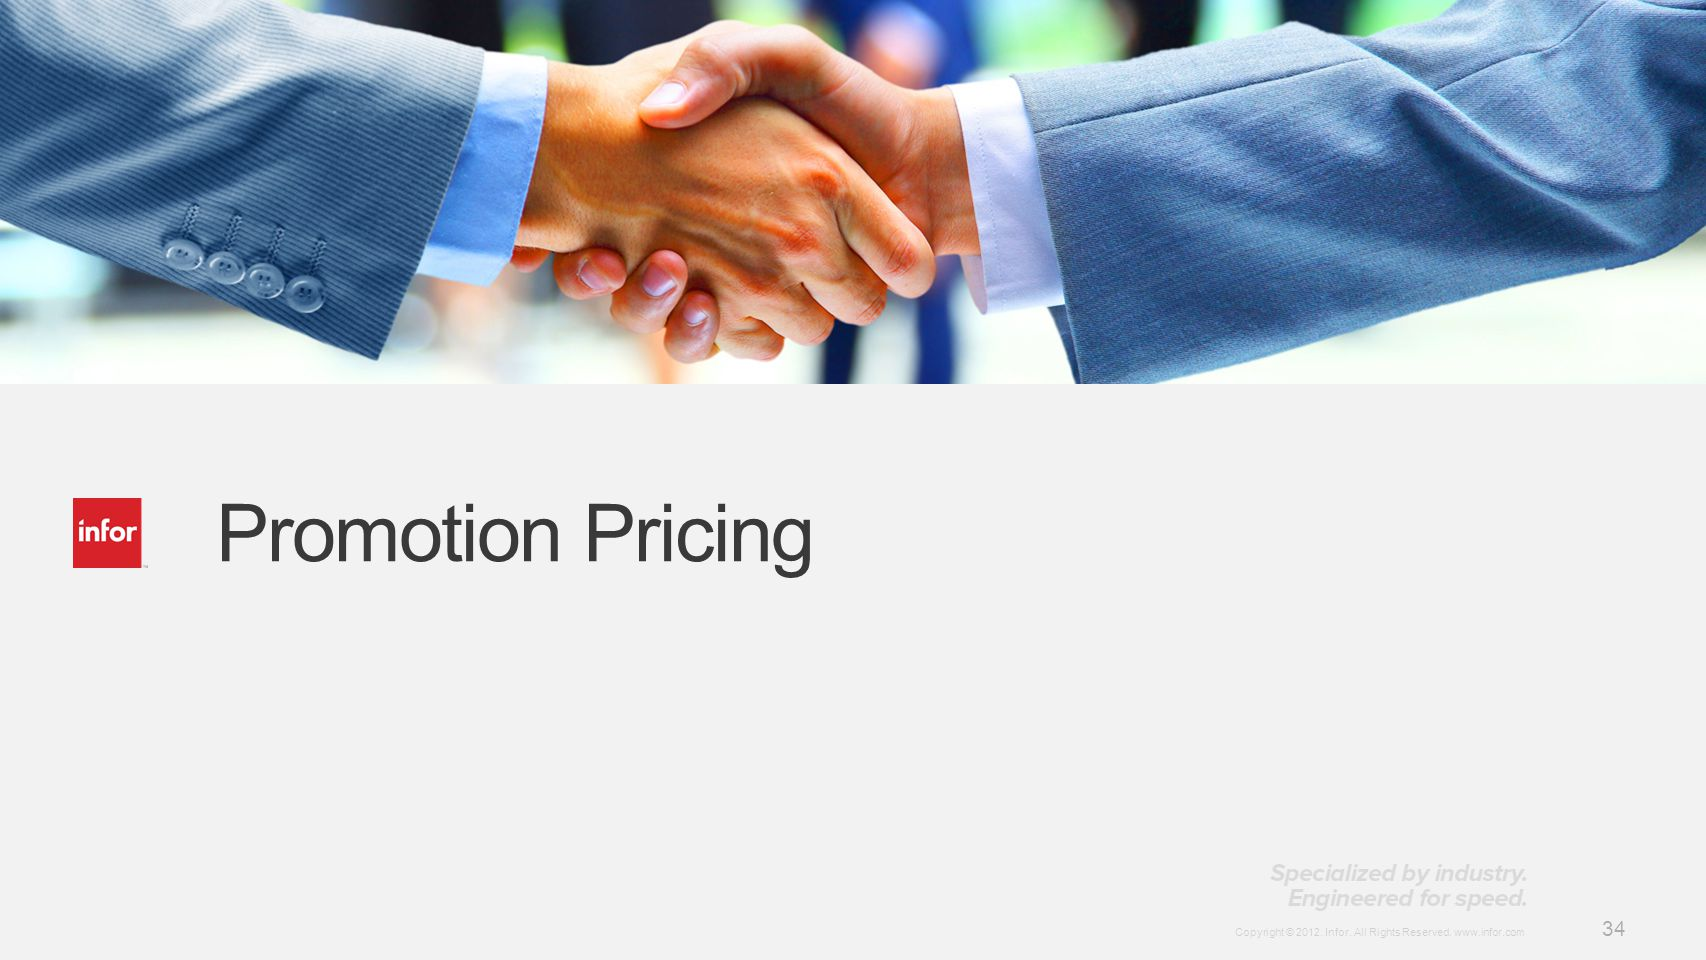 Promotion Pricing